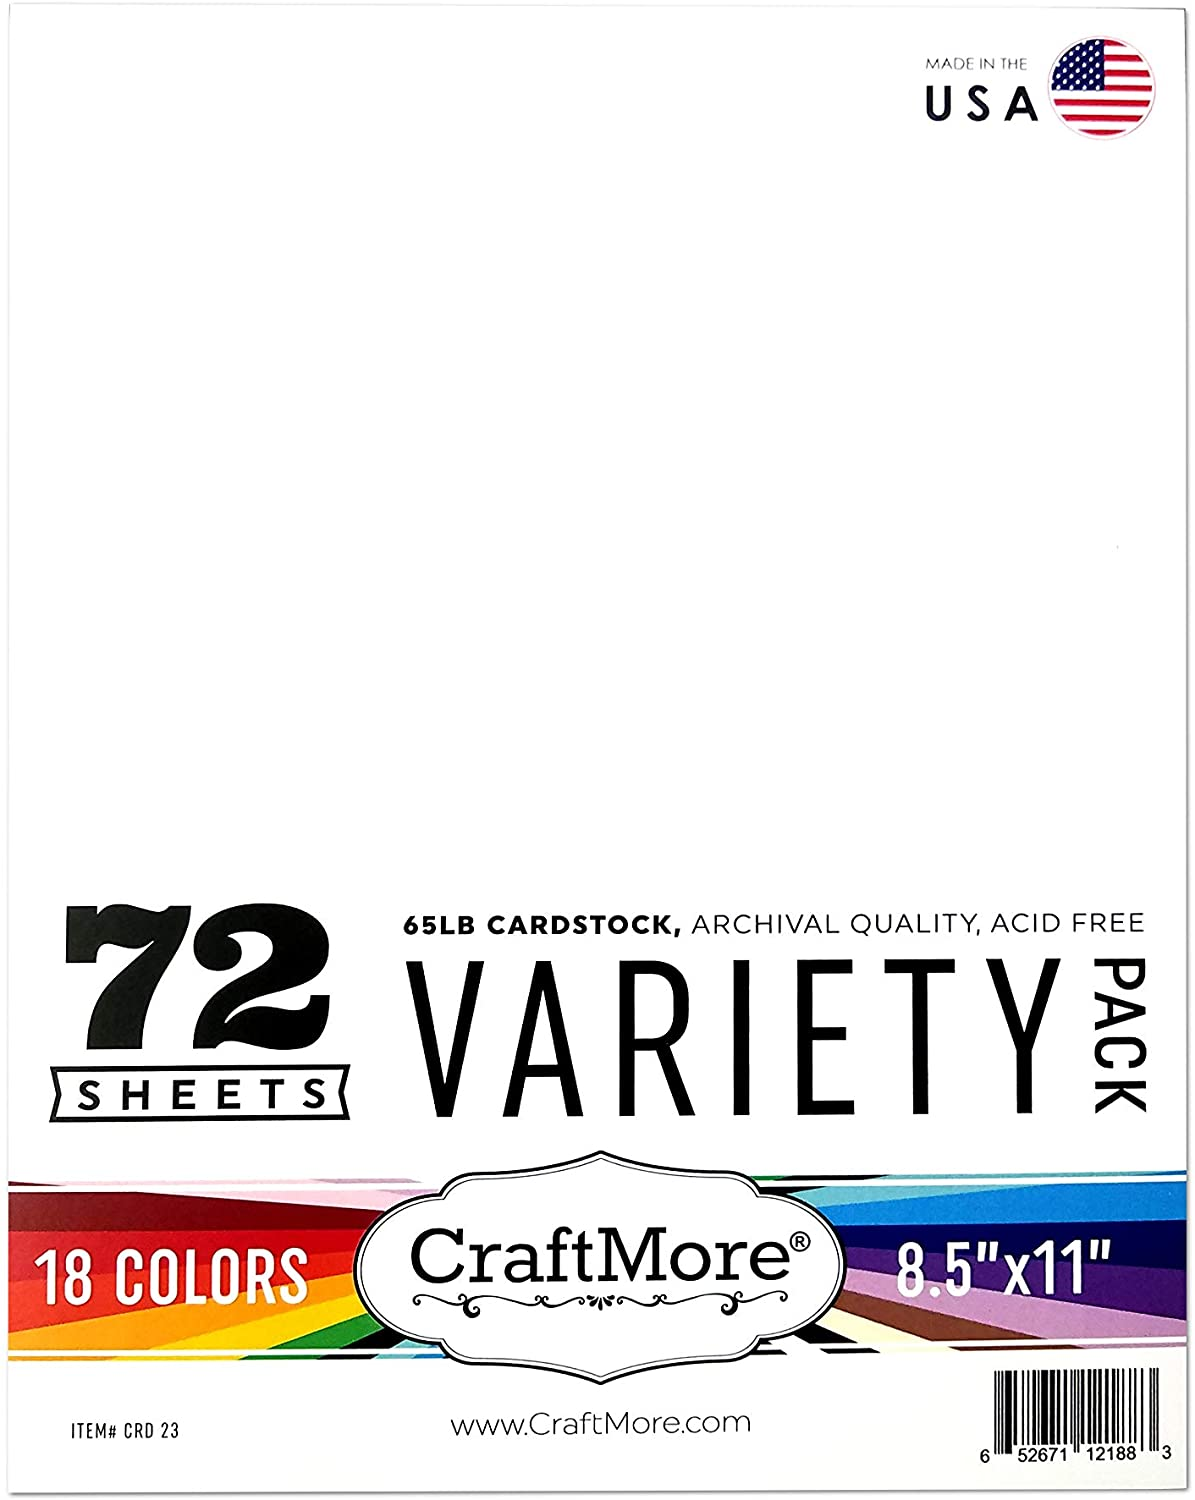 CraftMore Card Stock Variety Essential Pack, 8.5 by 11 Inches, 72 Sheets